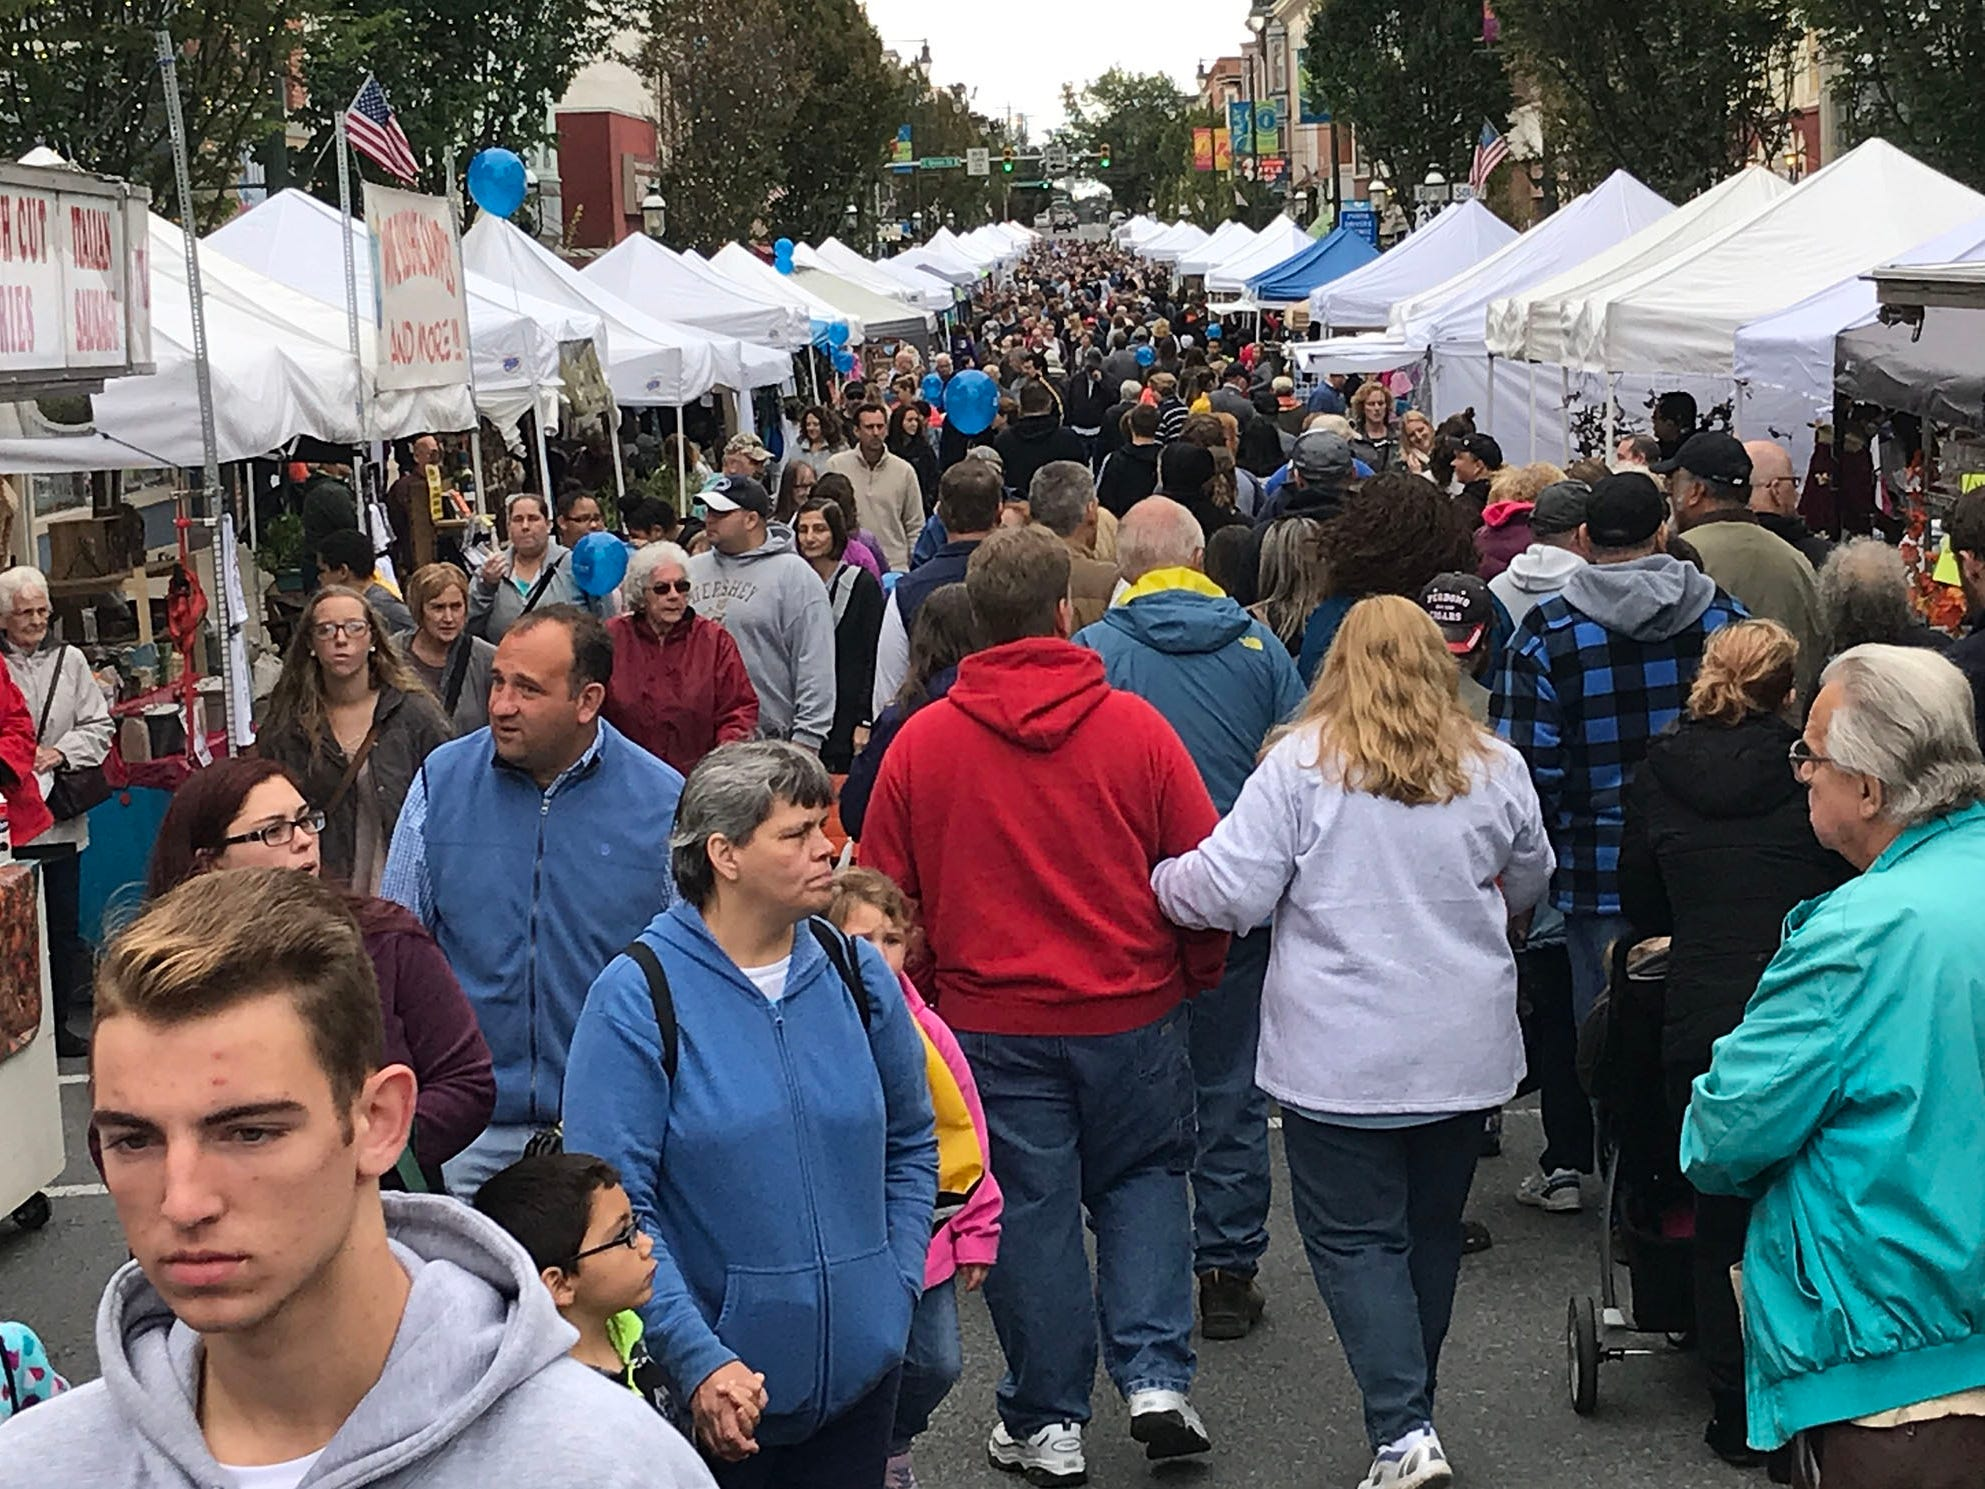 Crowds gather downtown for Applefest. Applefest started Saturday morning October 20, 2018 in downtown Chambersburg.